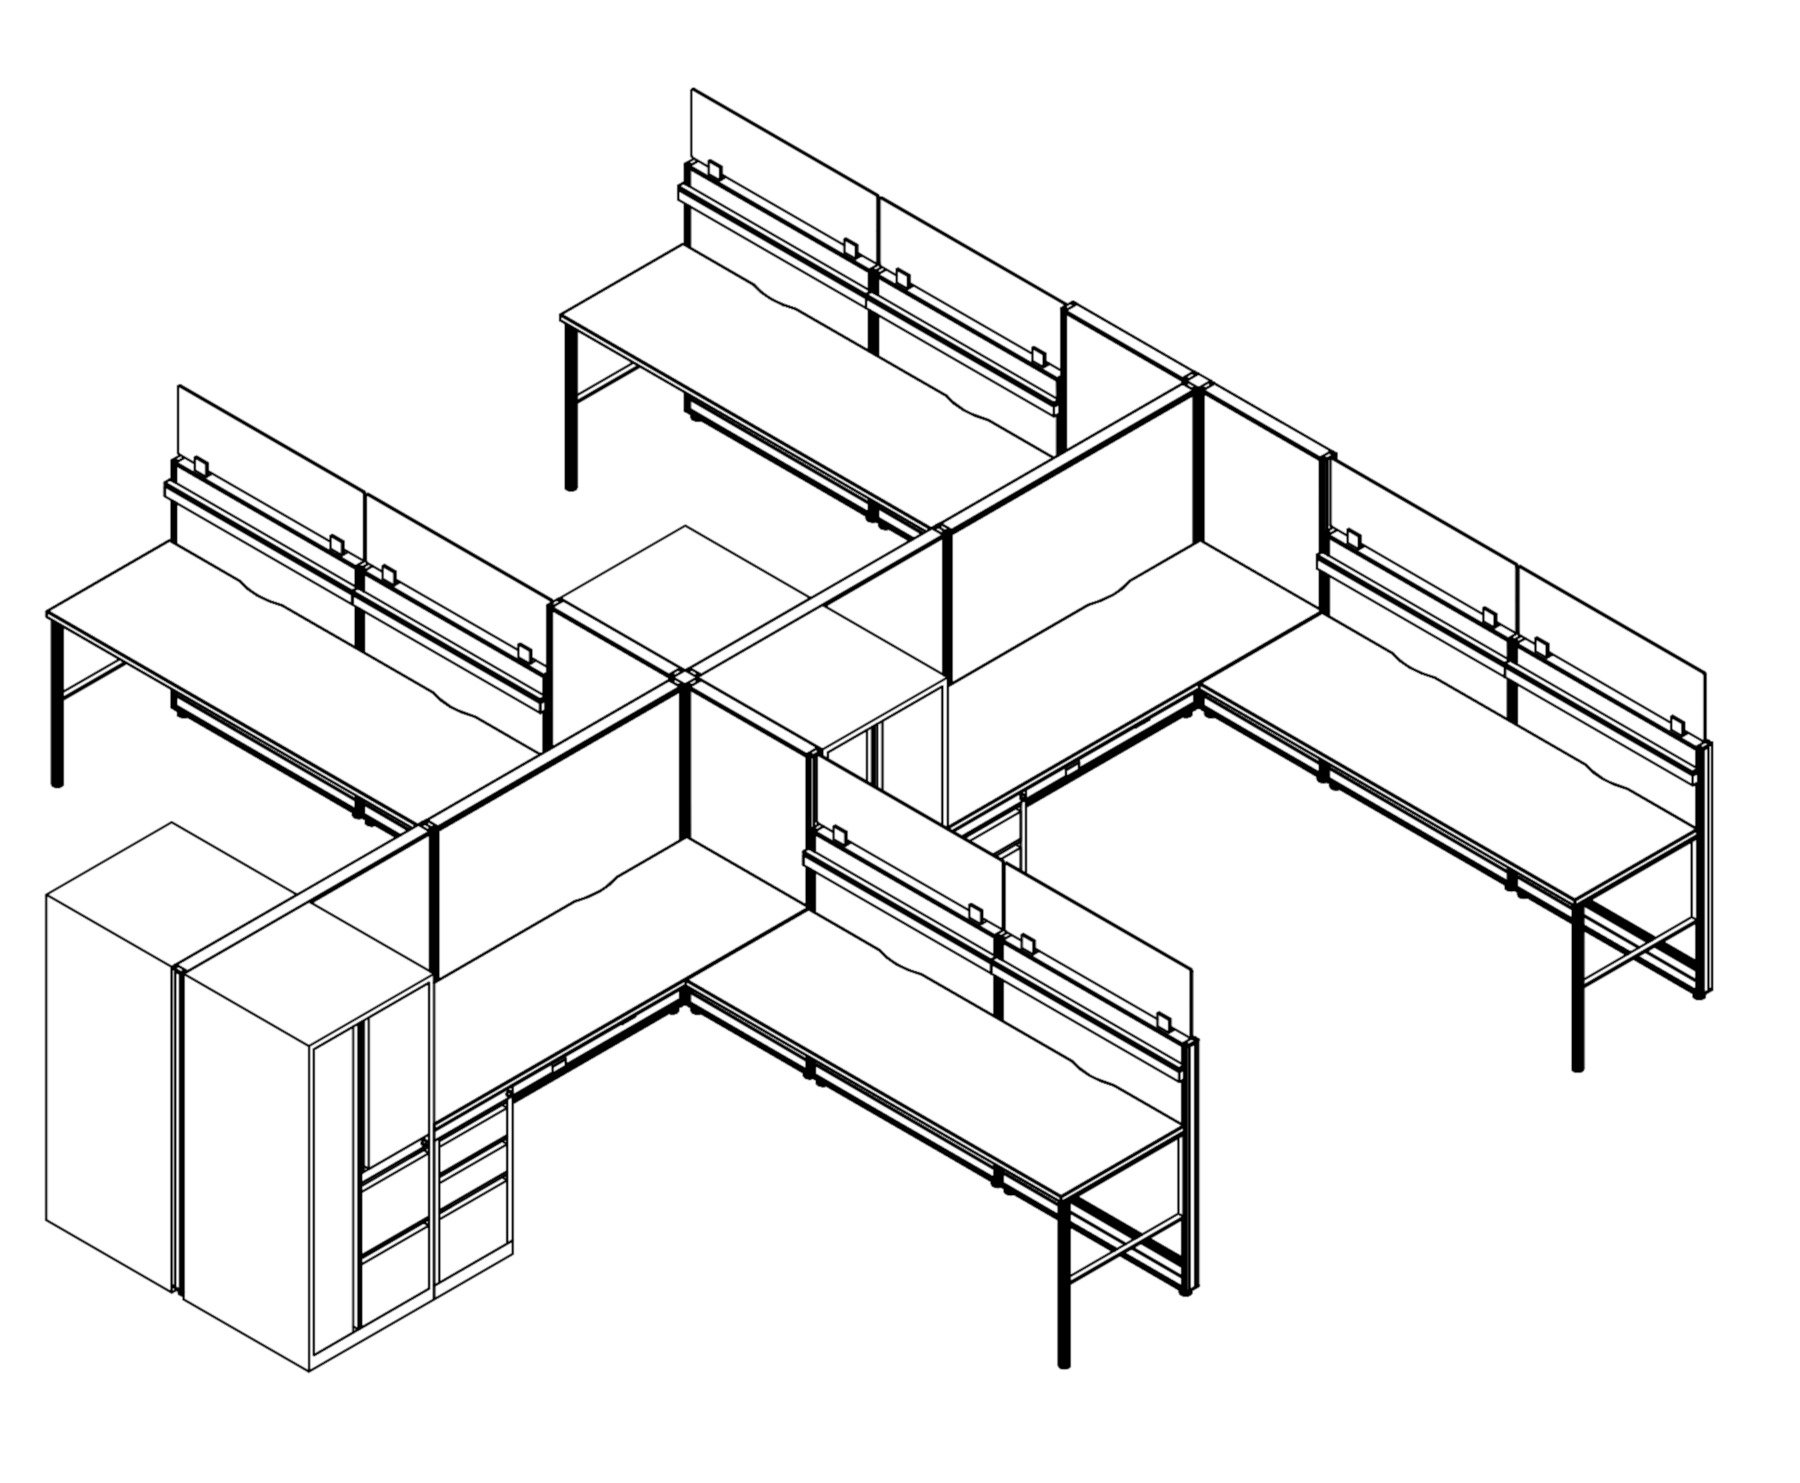 Technical drawing of the Compile CM518 set of work stations. Each of the 4 workstations has an L shaped work surface, with ample drawer and cabinet storage to one side.